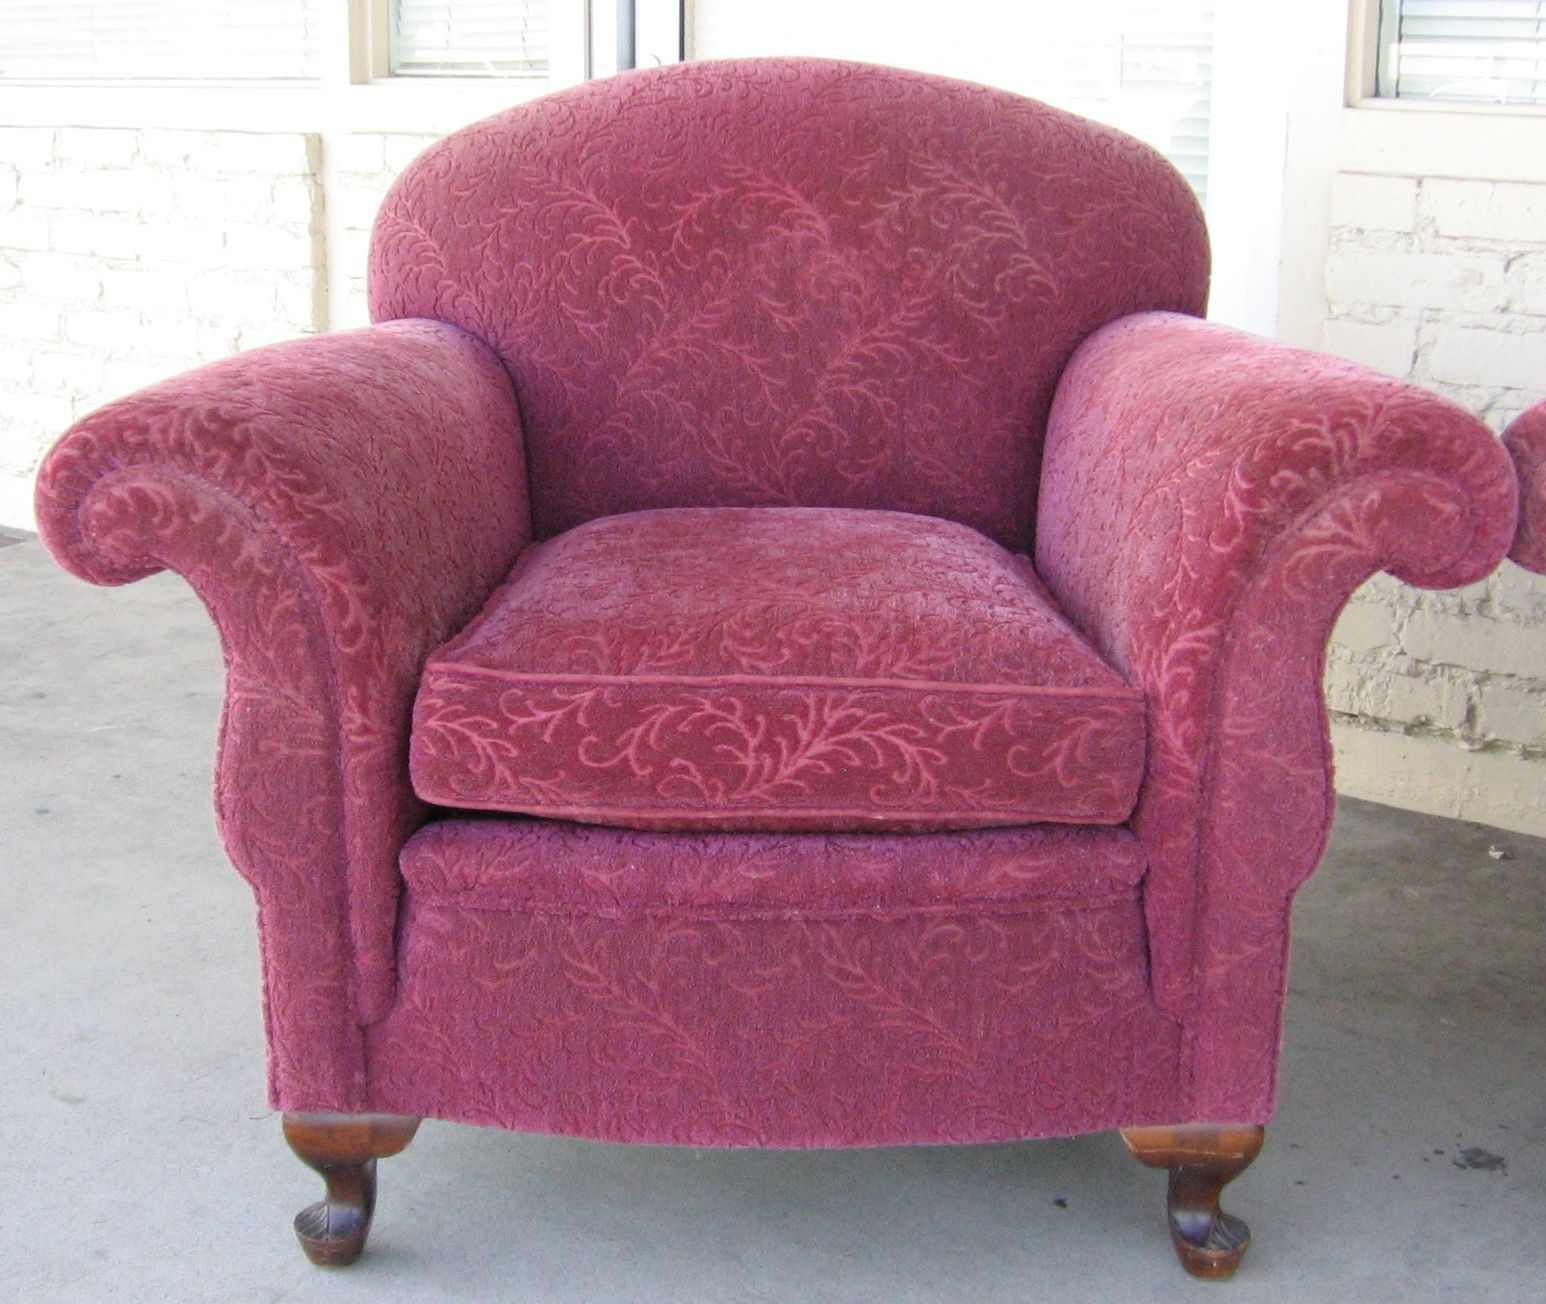 1930u0027s Upholstered Furniture Images   Google Search